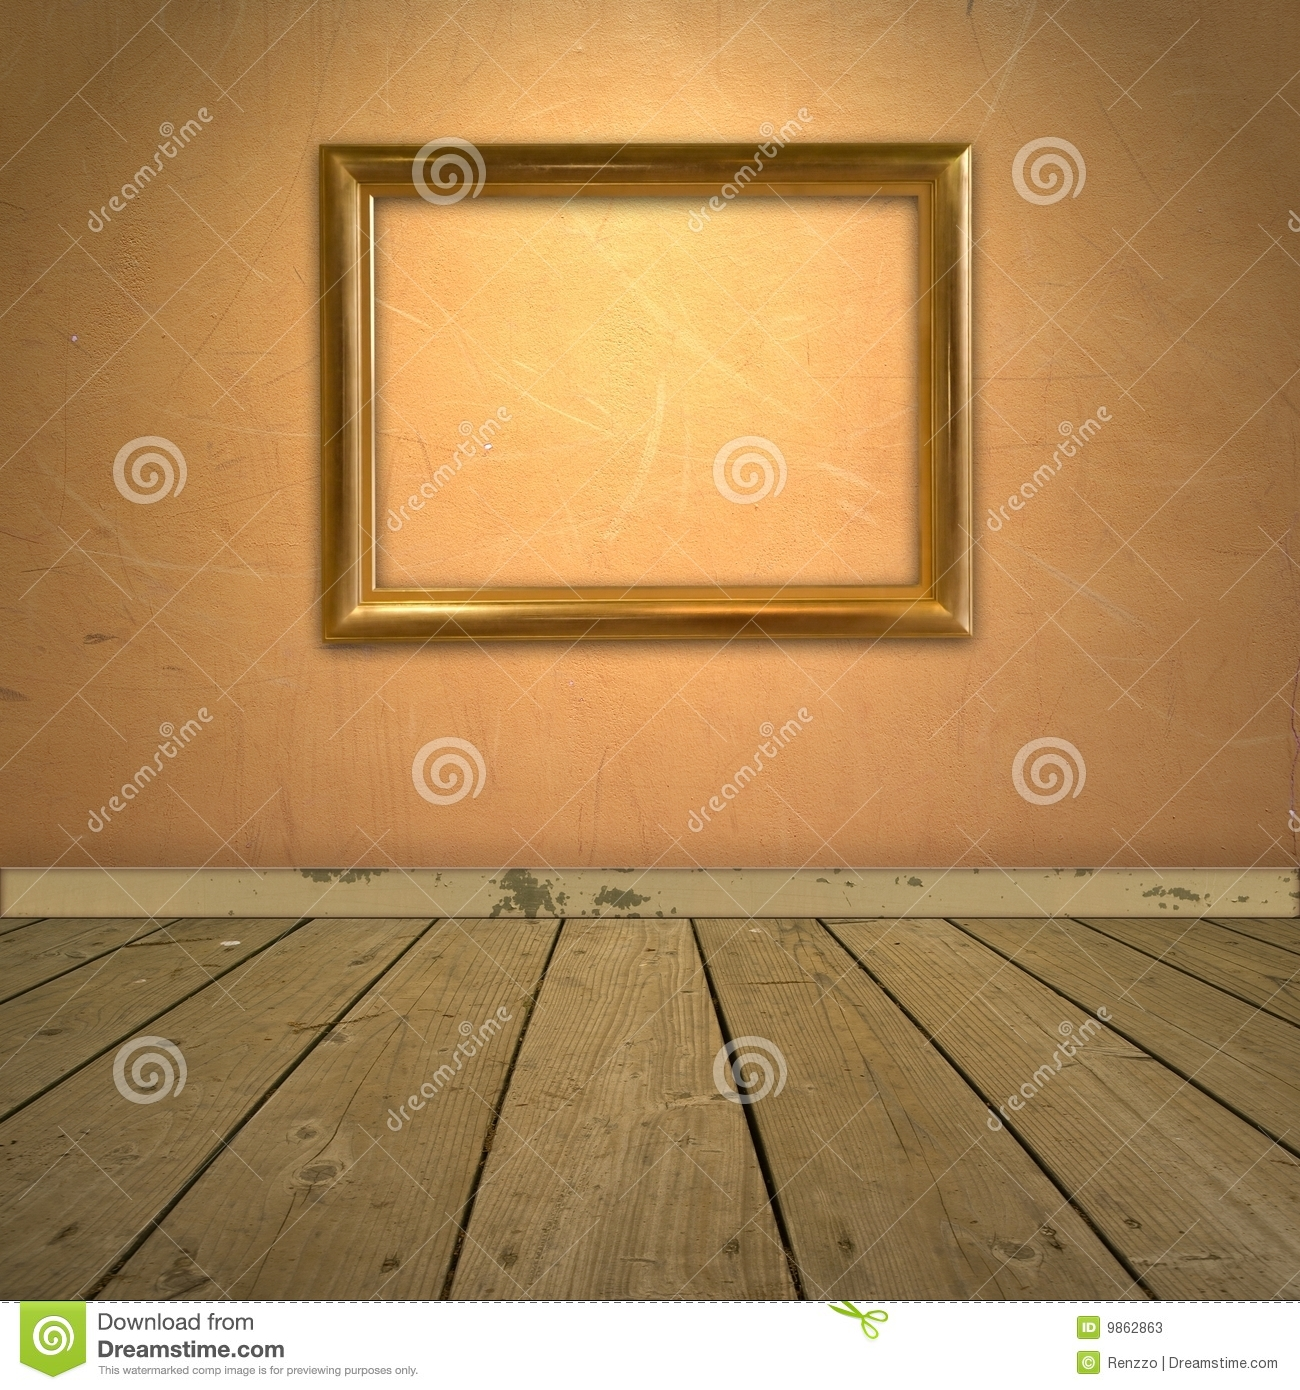 Wall Picture Frame grungy orange wall with frame stock photos - image: 9862863